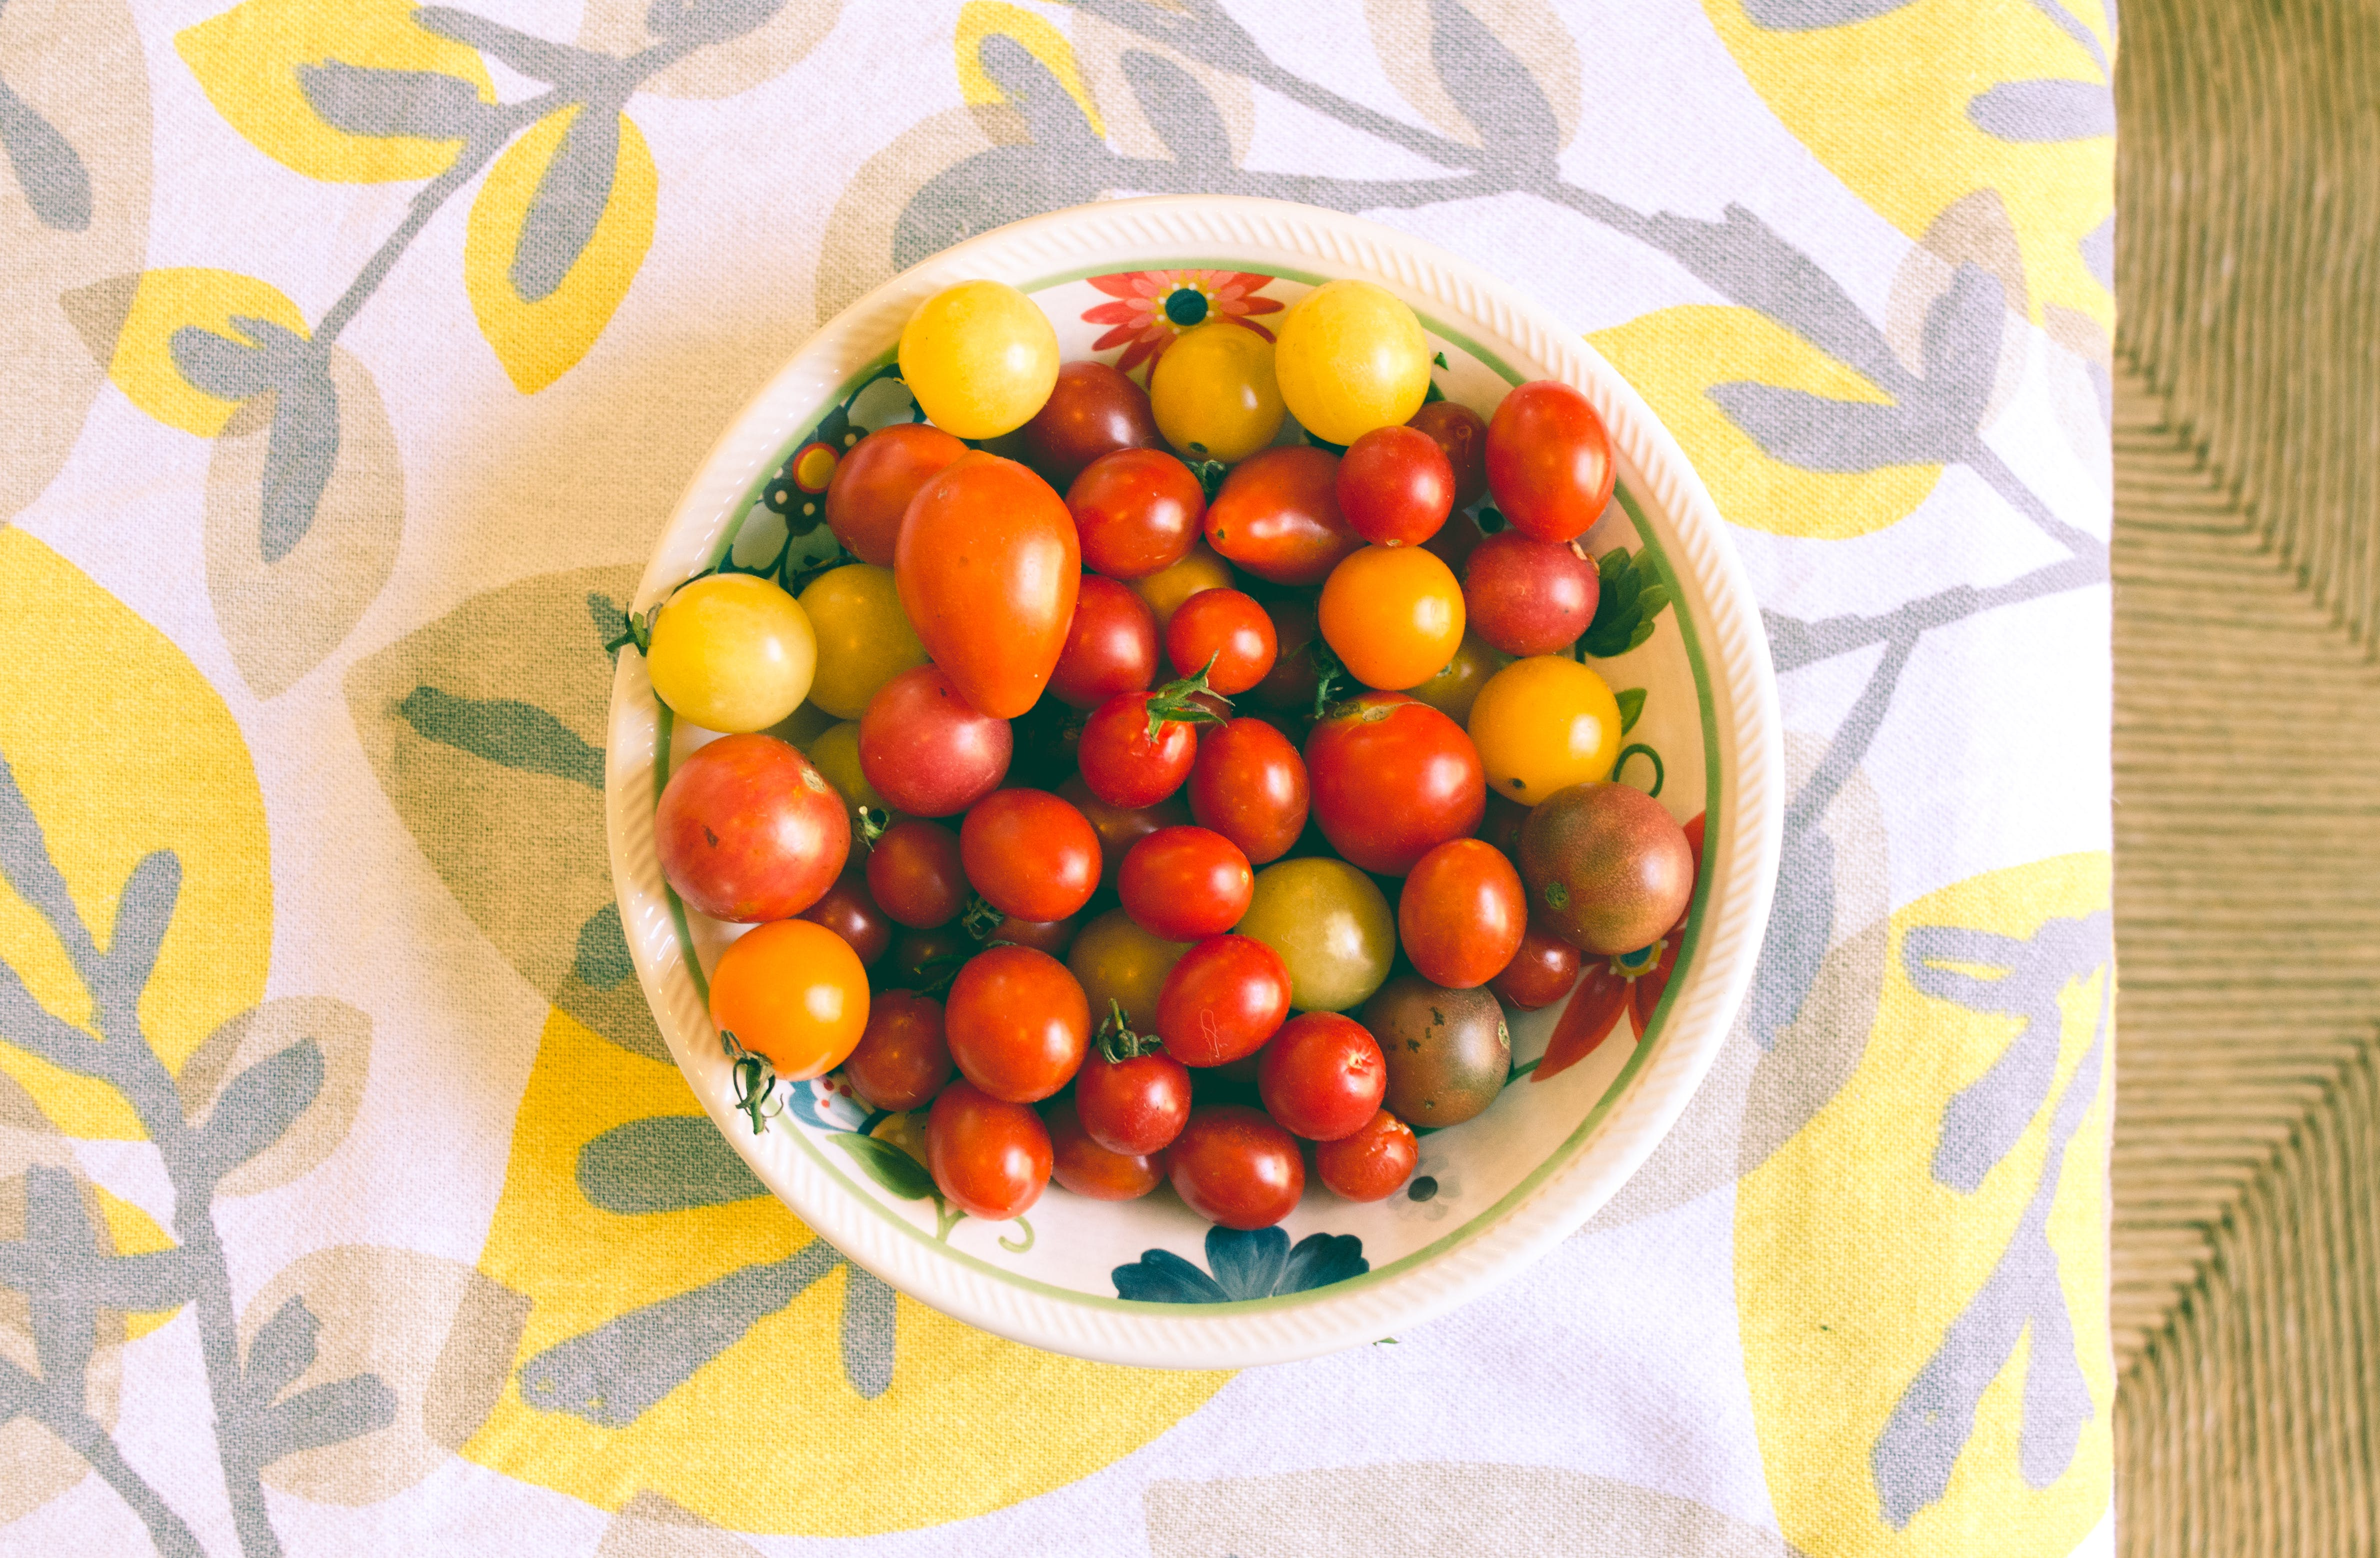 Bowl of Tomatoes on Textile